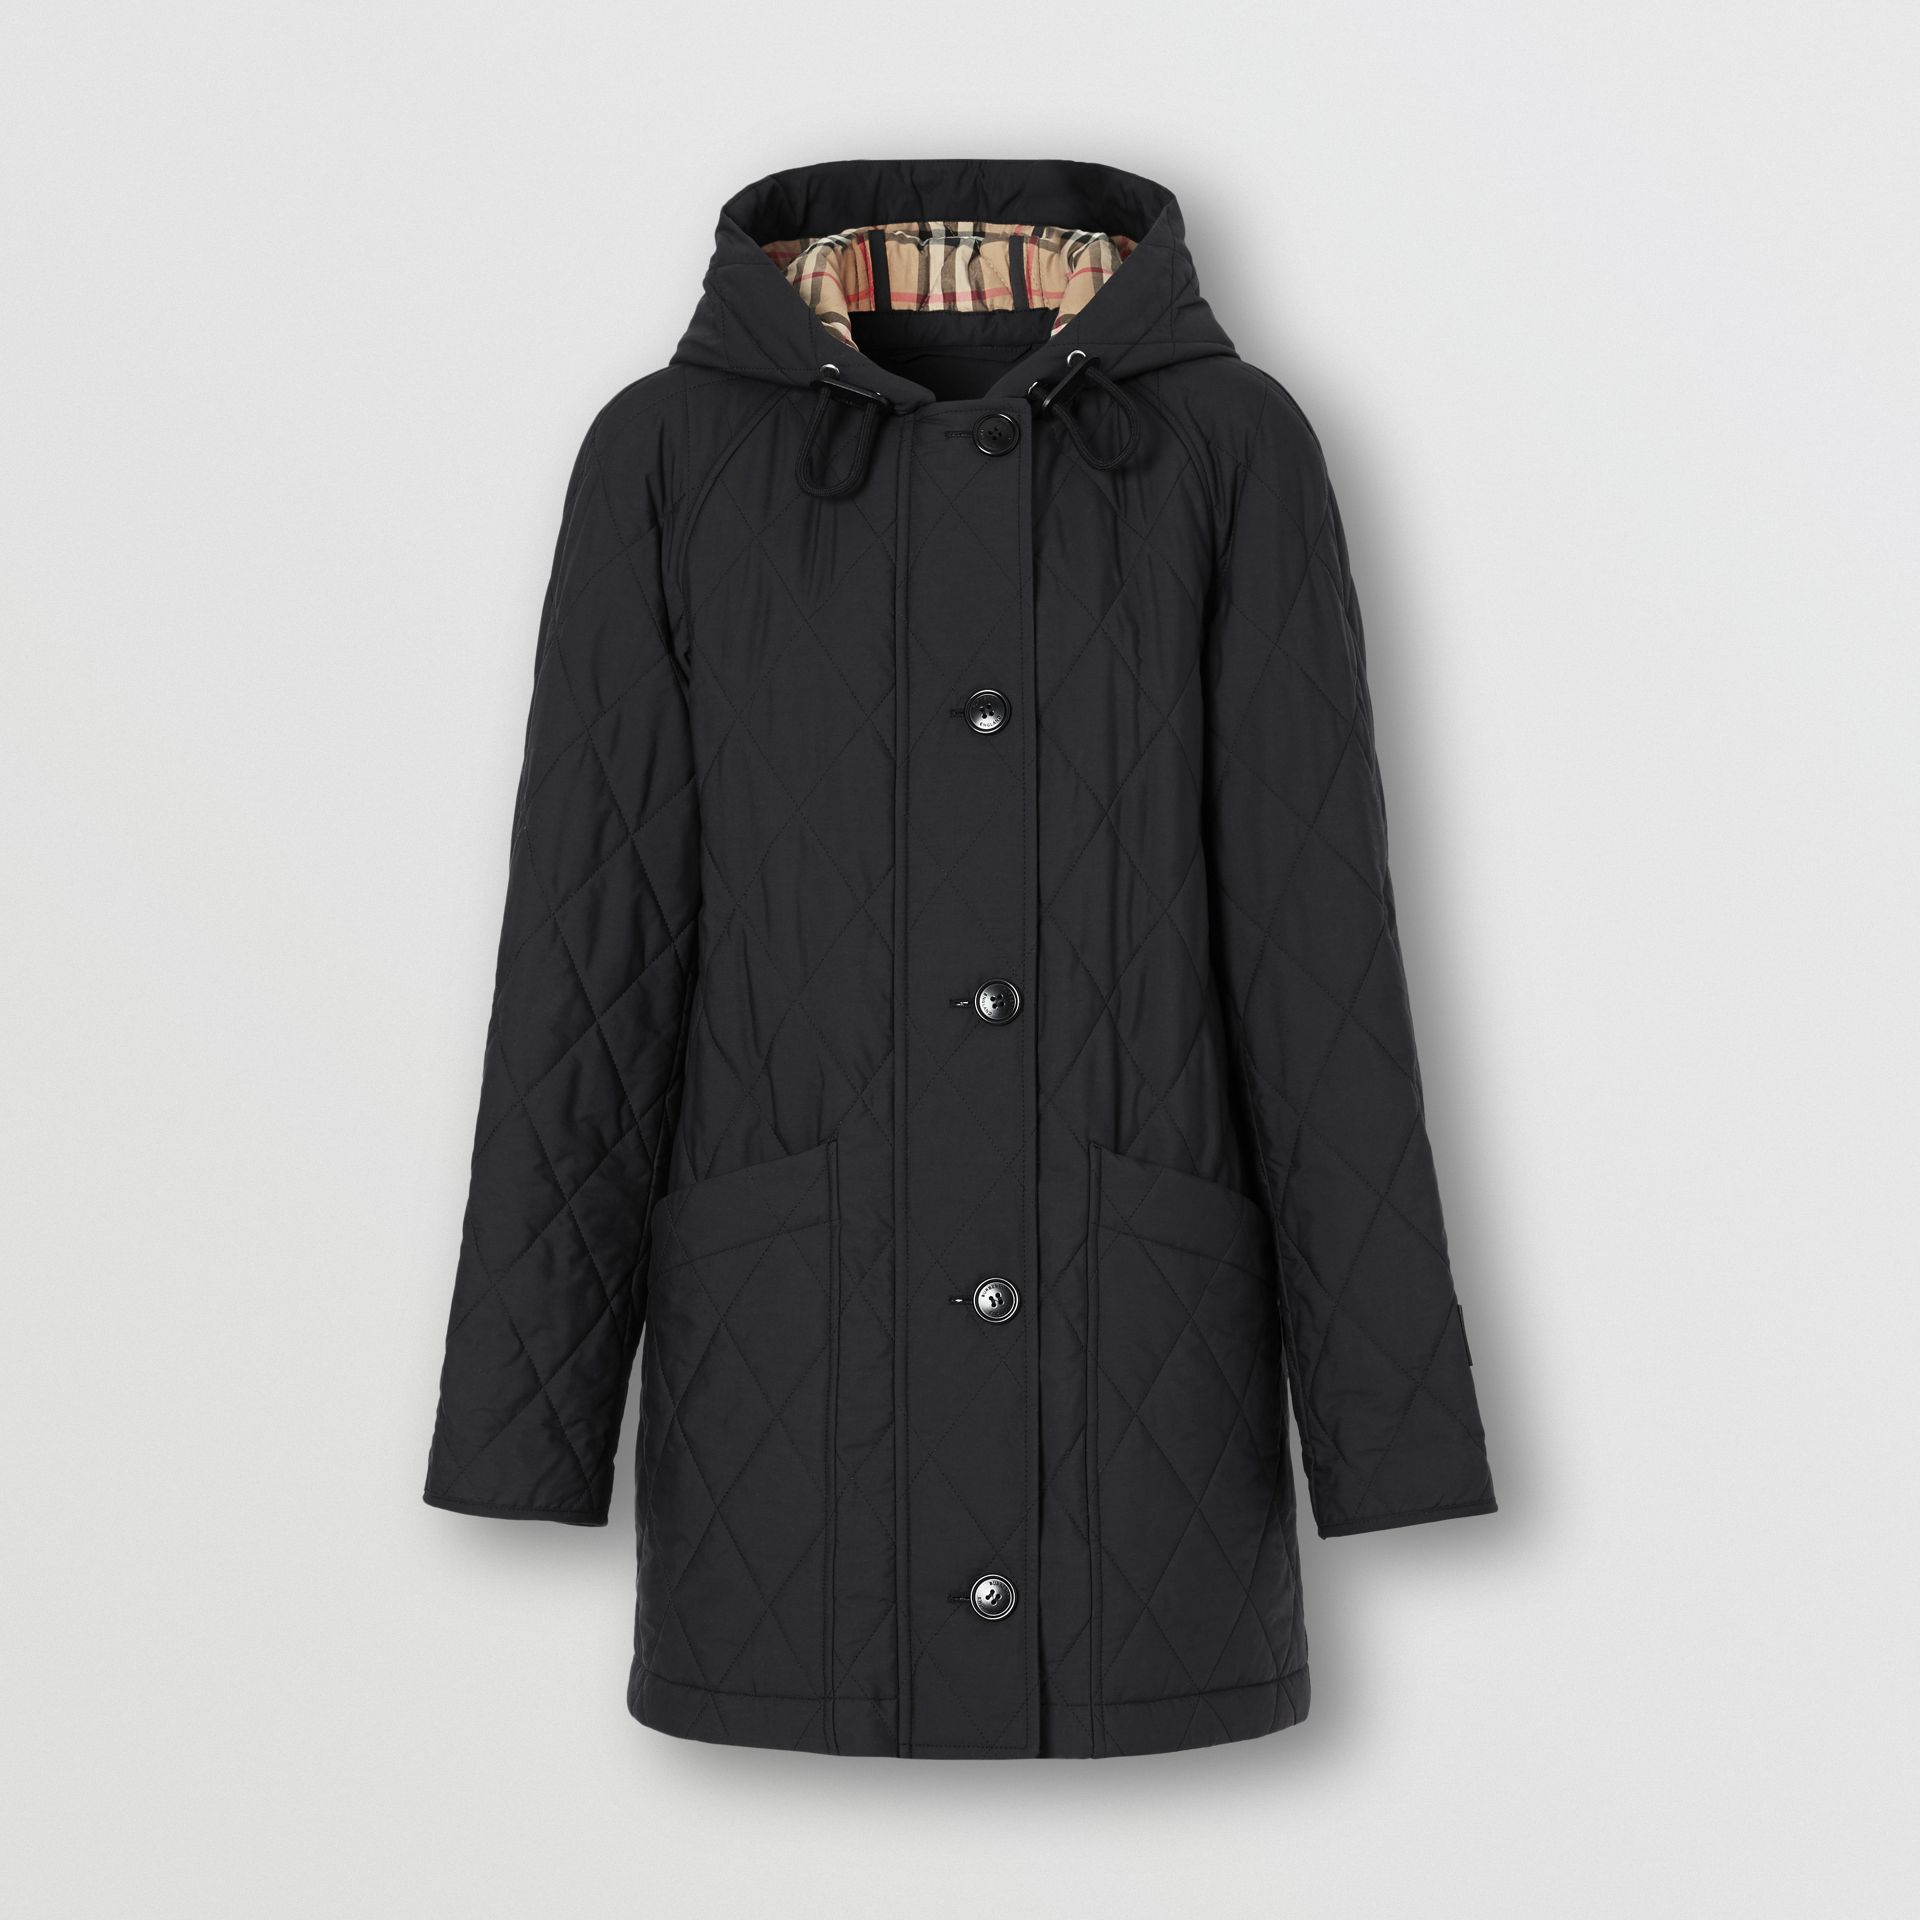 Diamond Quilted Cotton Hooded Coat in Black - Women | Burberry - gallery image 3